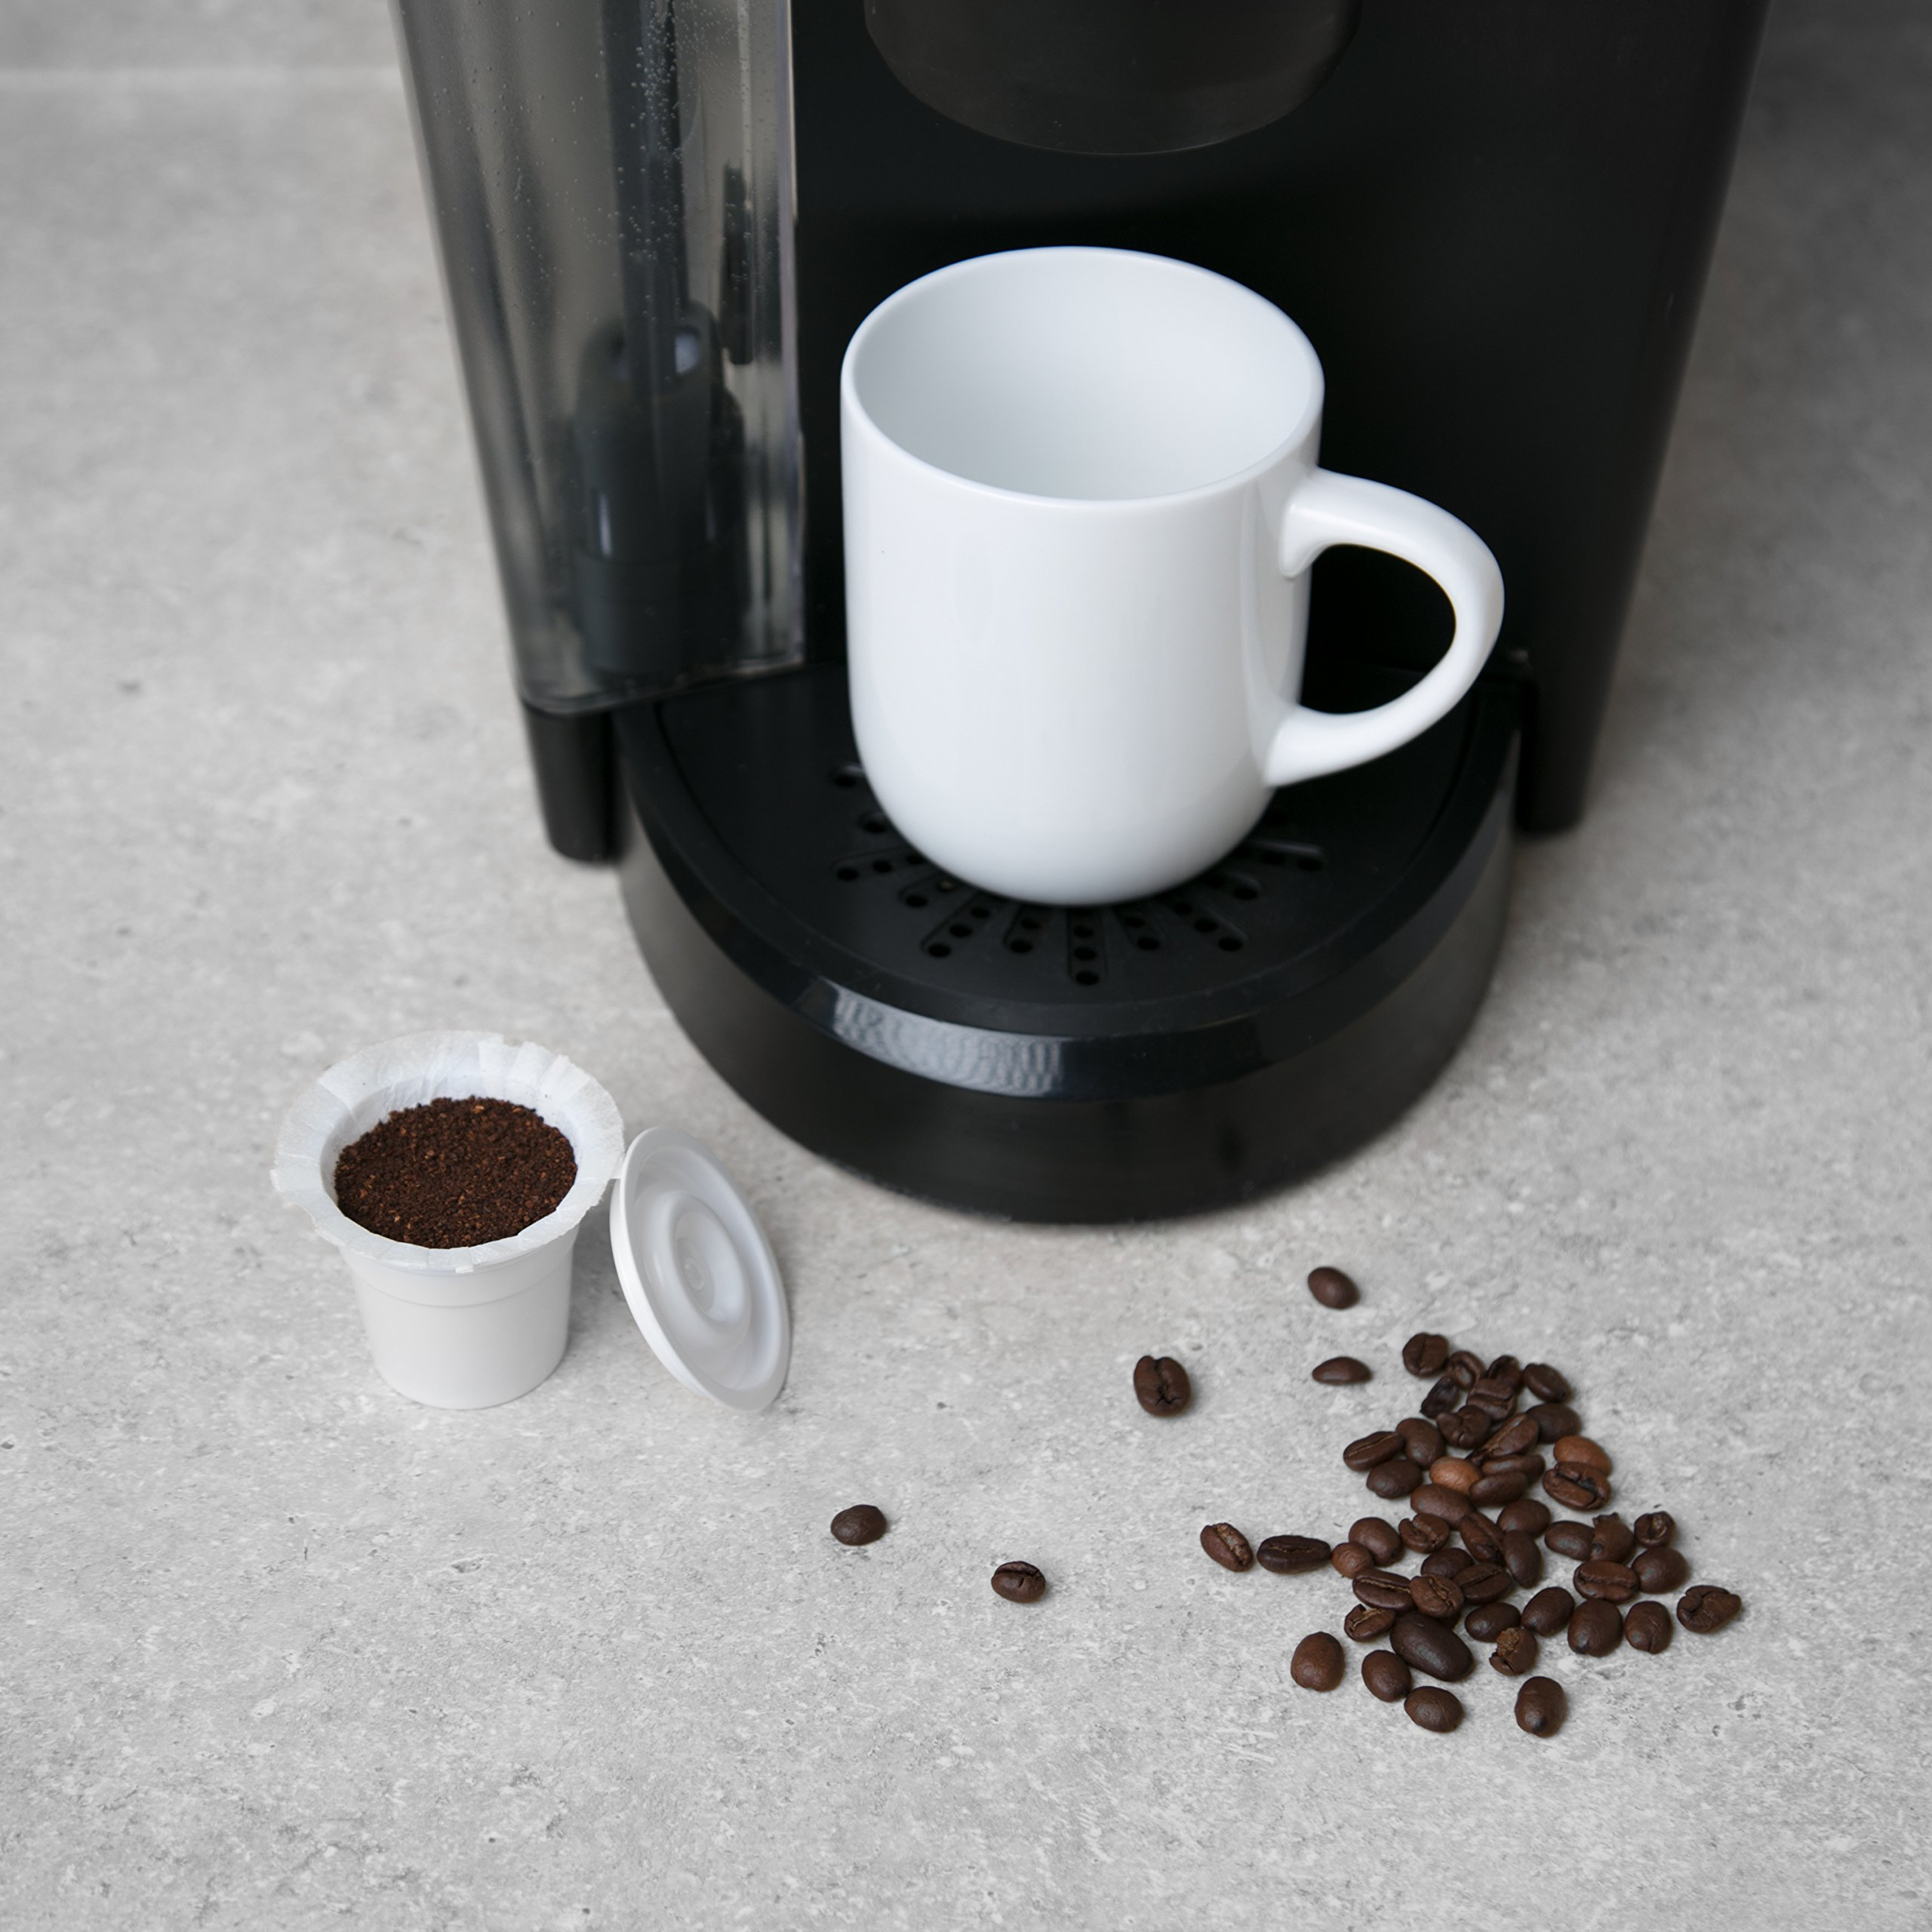 Disposable Cups for Use in Keurig Brewers - Simple Cups - 50 Cups, Lids, and Filters - Use Your Own Coffee in K-cups by Simple Cups (Image #4)